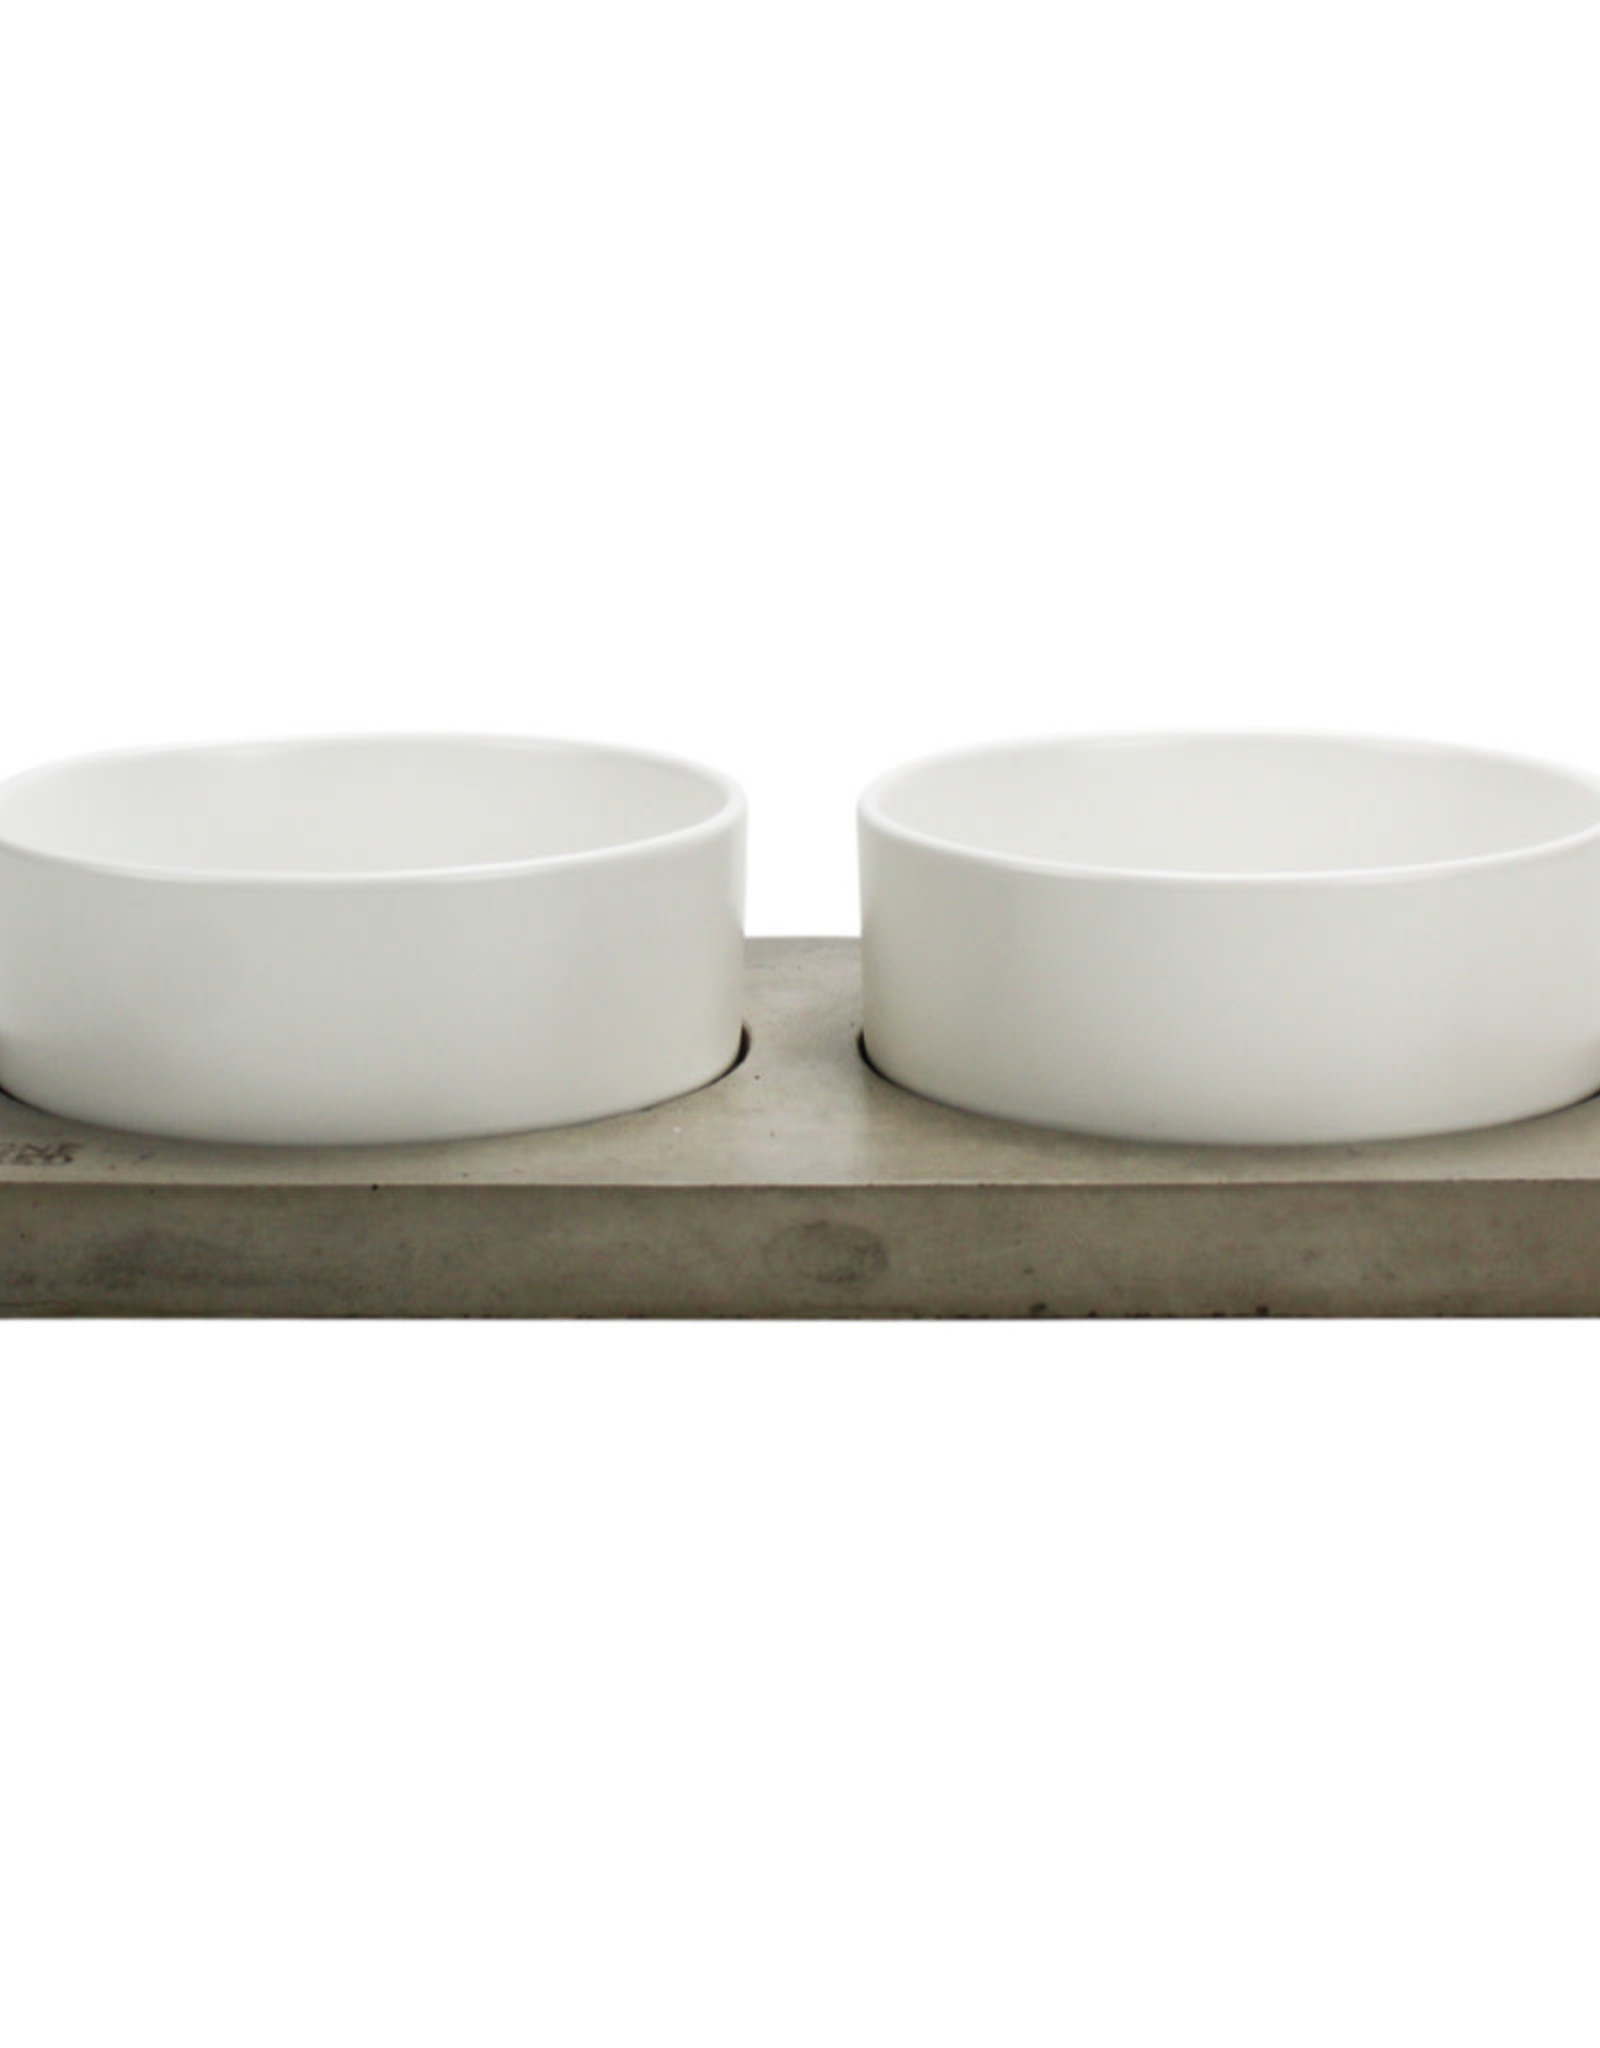 BE ONE BREED Be One Breed Ceramic and Concrete Bowl Duo